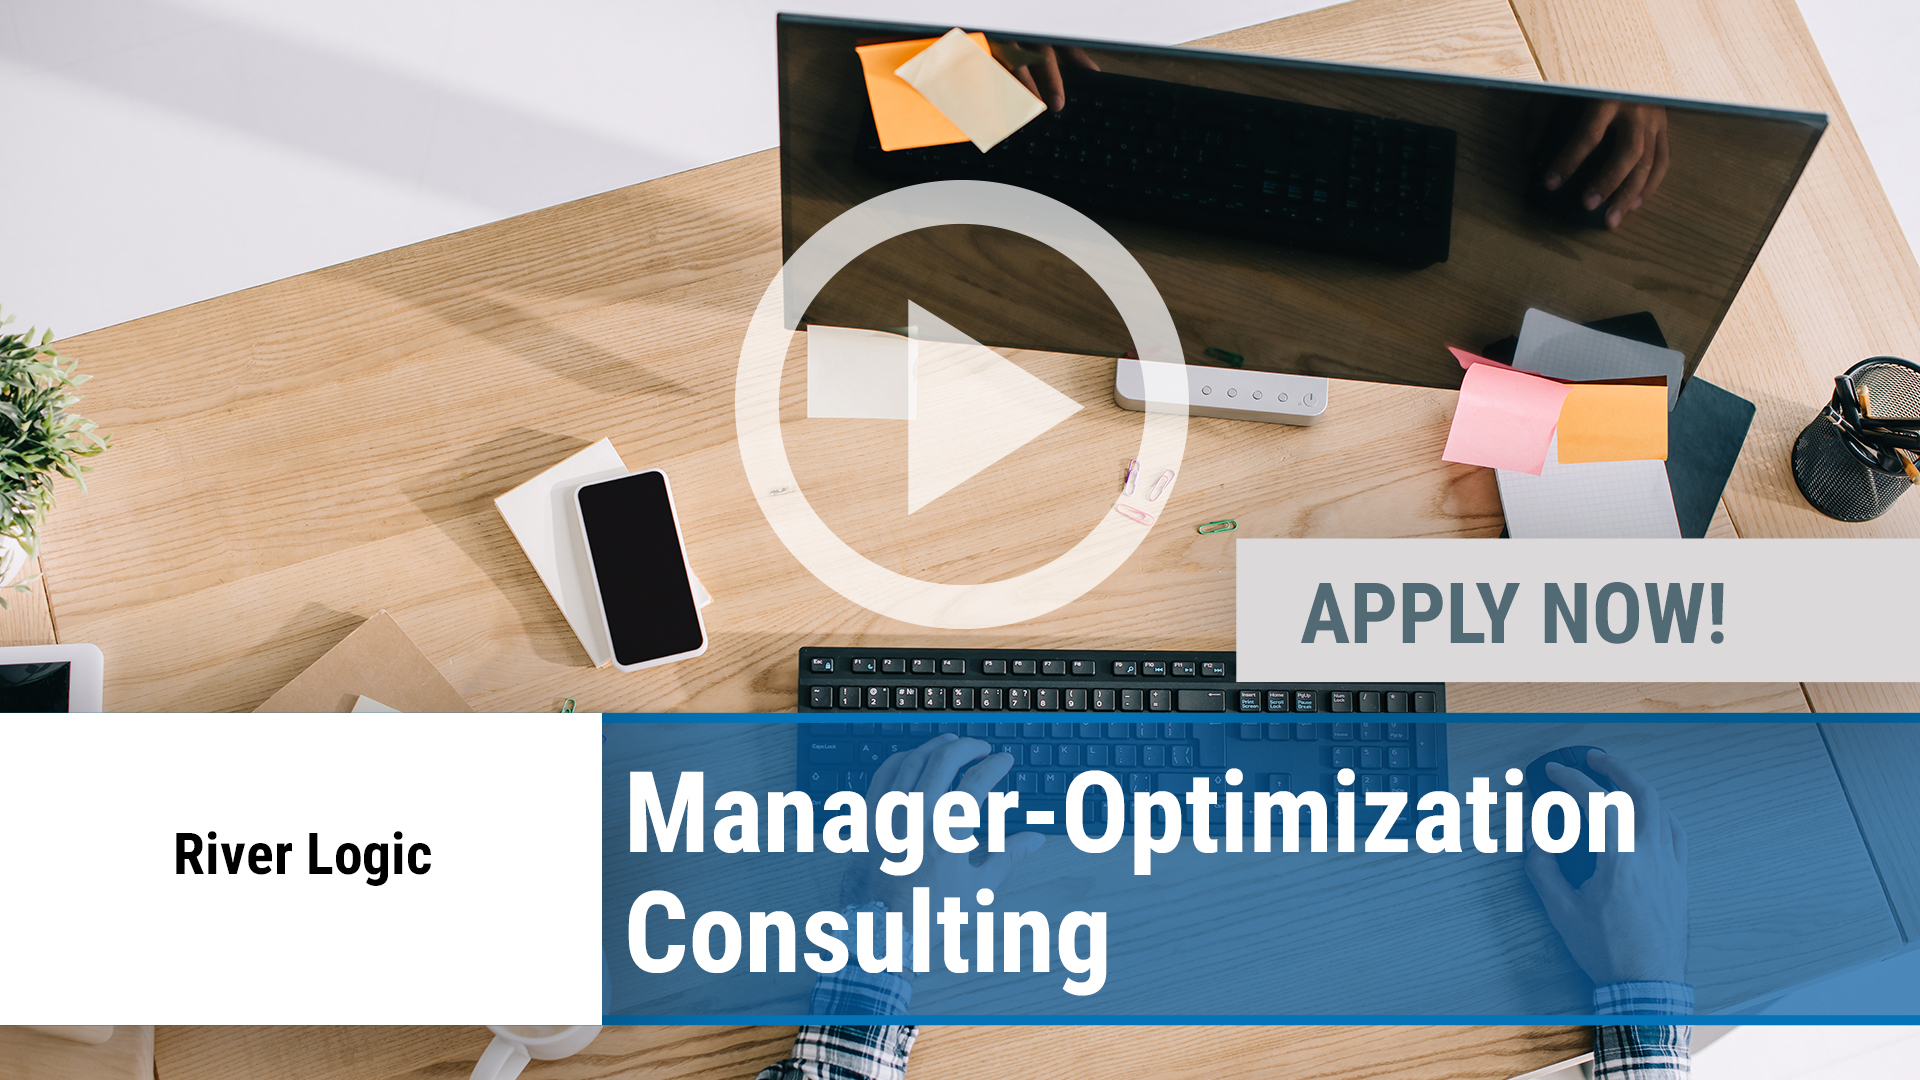 Watch our careers video for available job opening Manager-Optimization Consulting in Dallas, TX